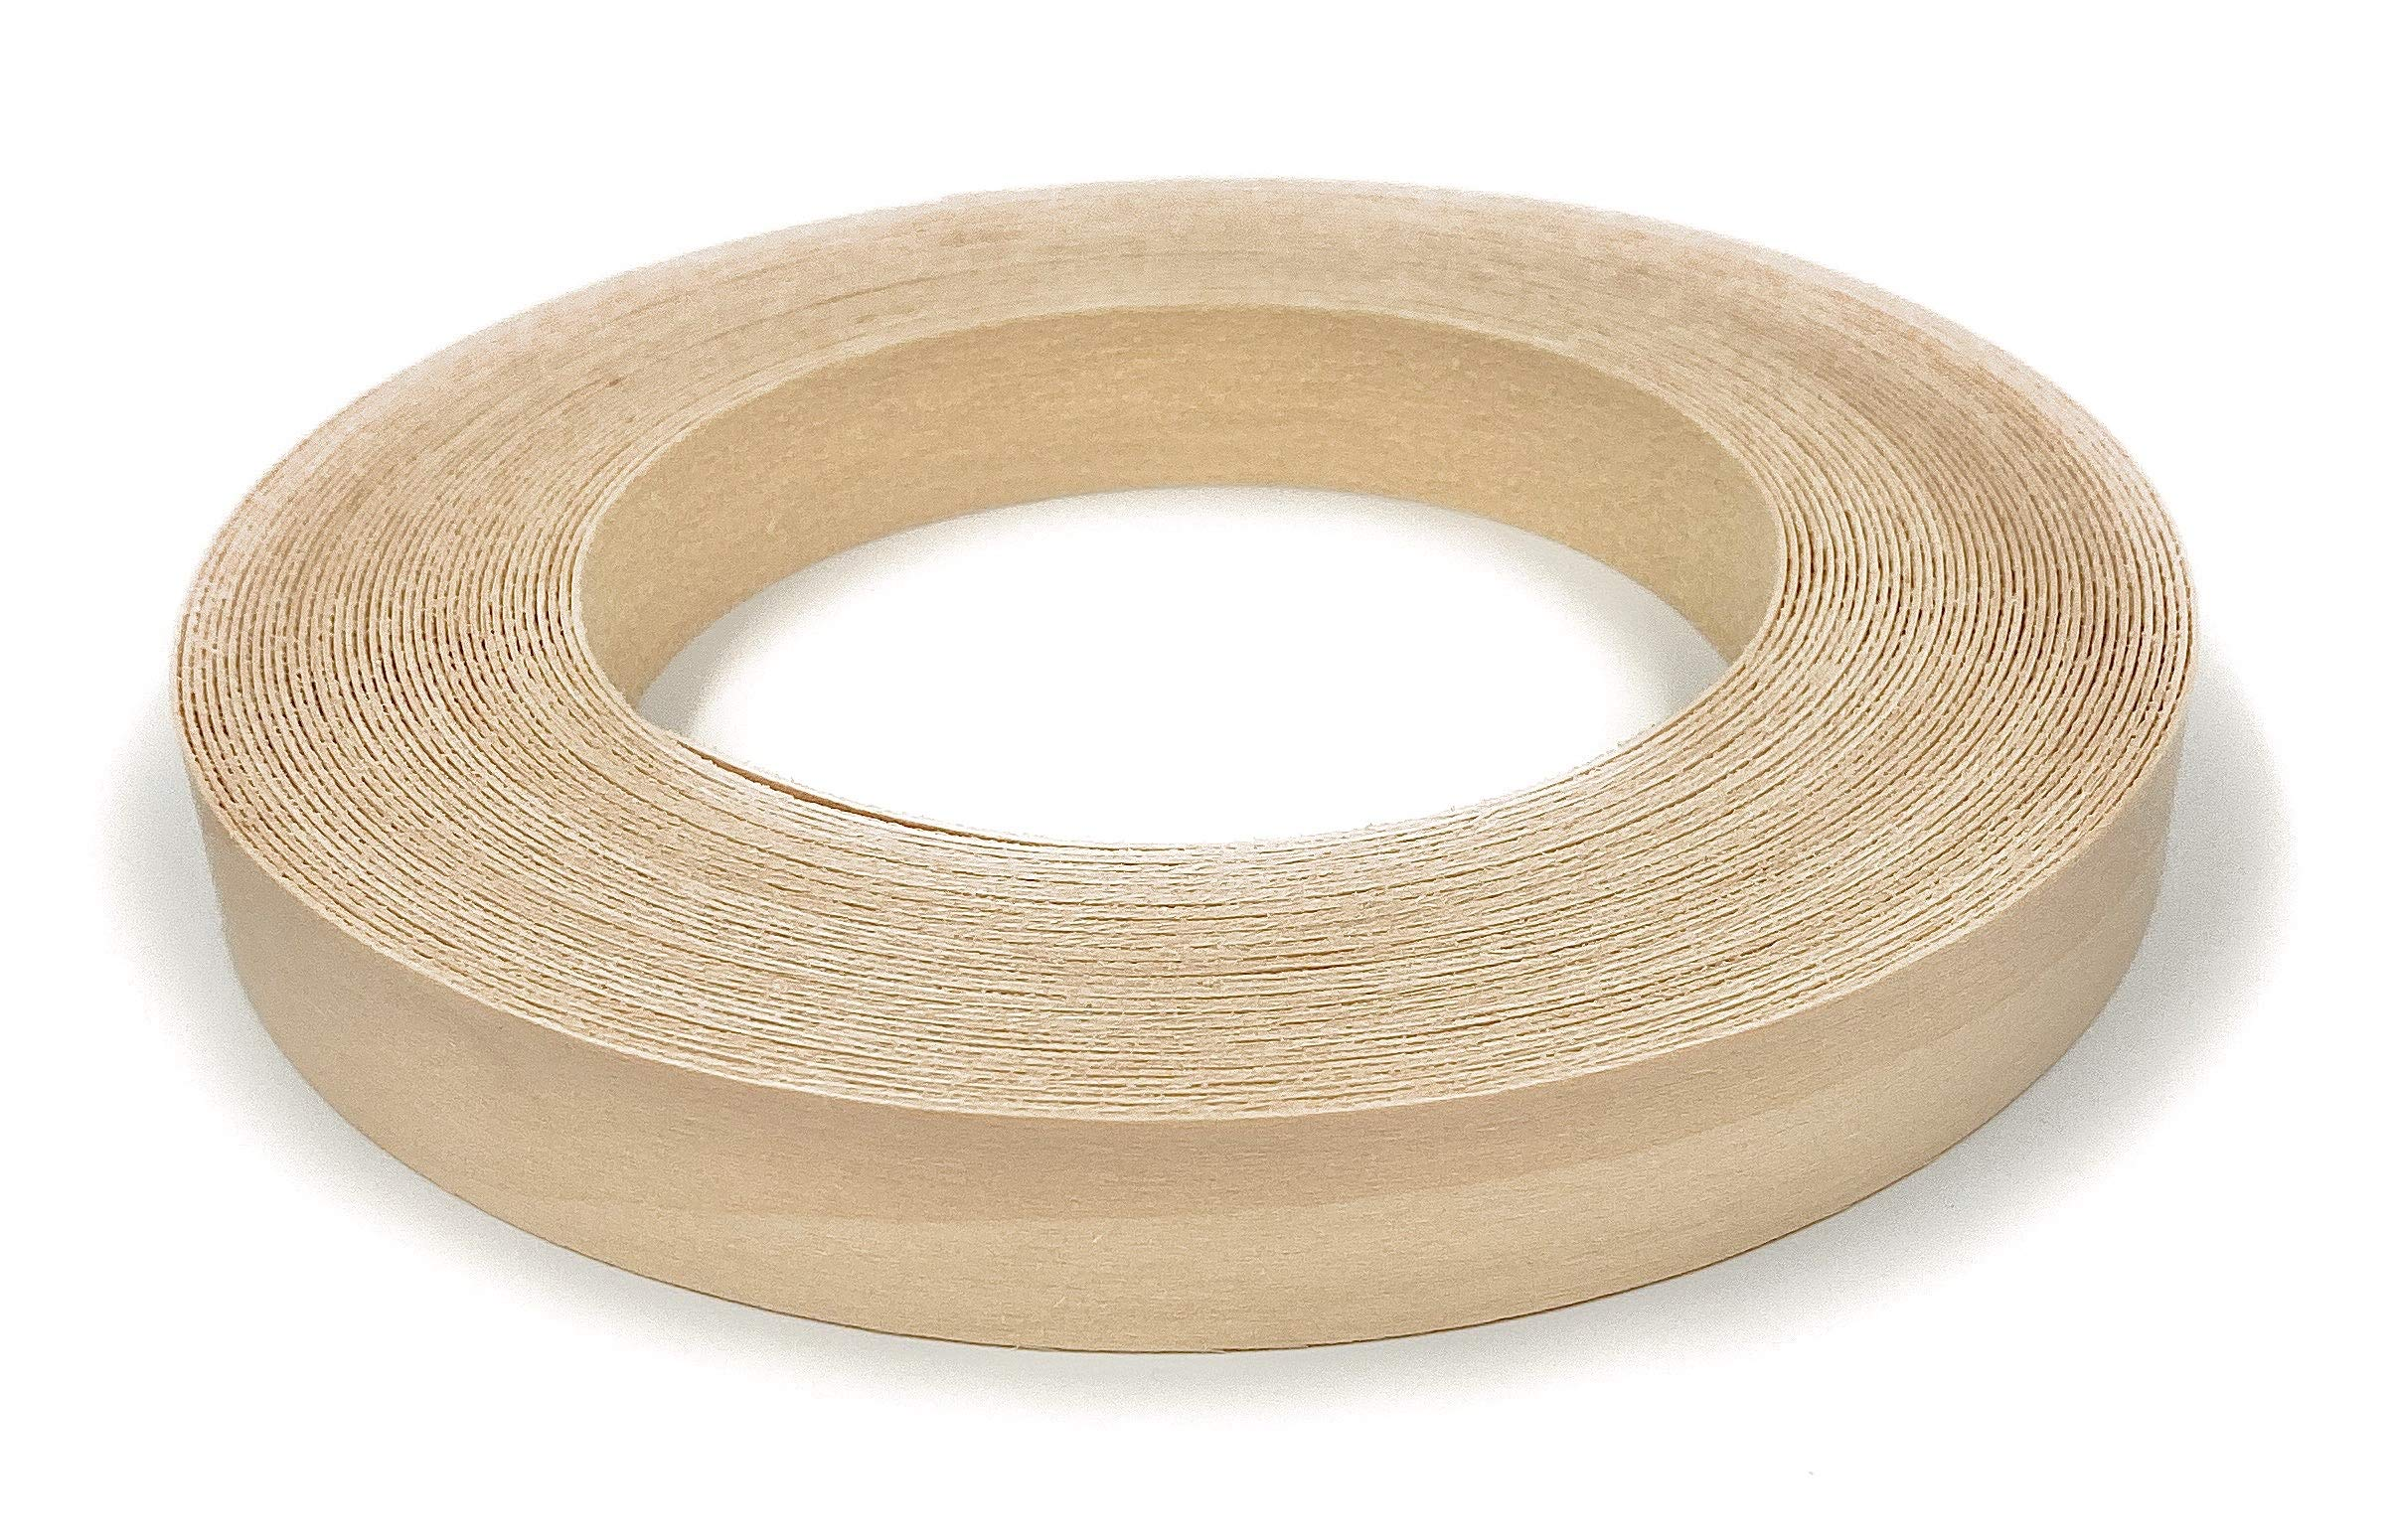 """Edge Supply Birch 3/4"""" X 50' Roll, Wood Veneer Edge Banding Preglued, Iron on with Hot Melt Adhesive, Flexible Wood Tape Sanded to Perfection. Easy Application, Made in USA."""